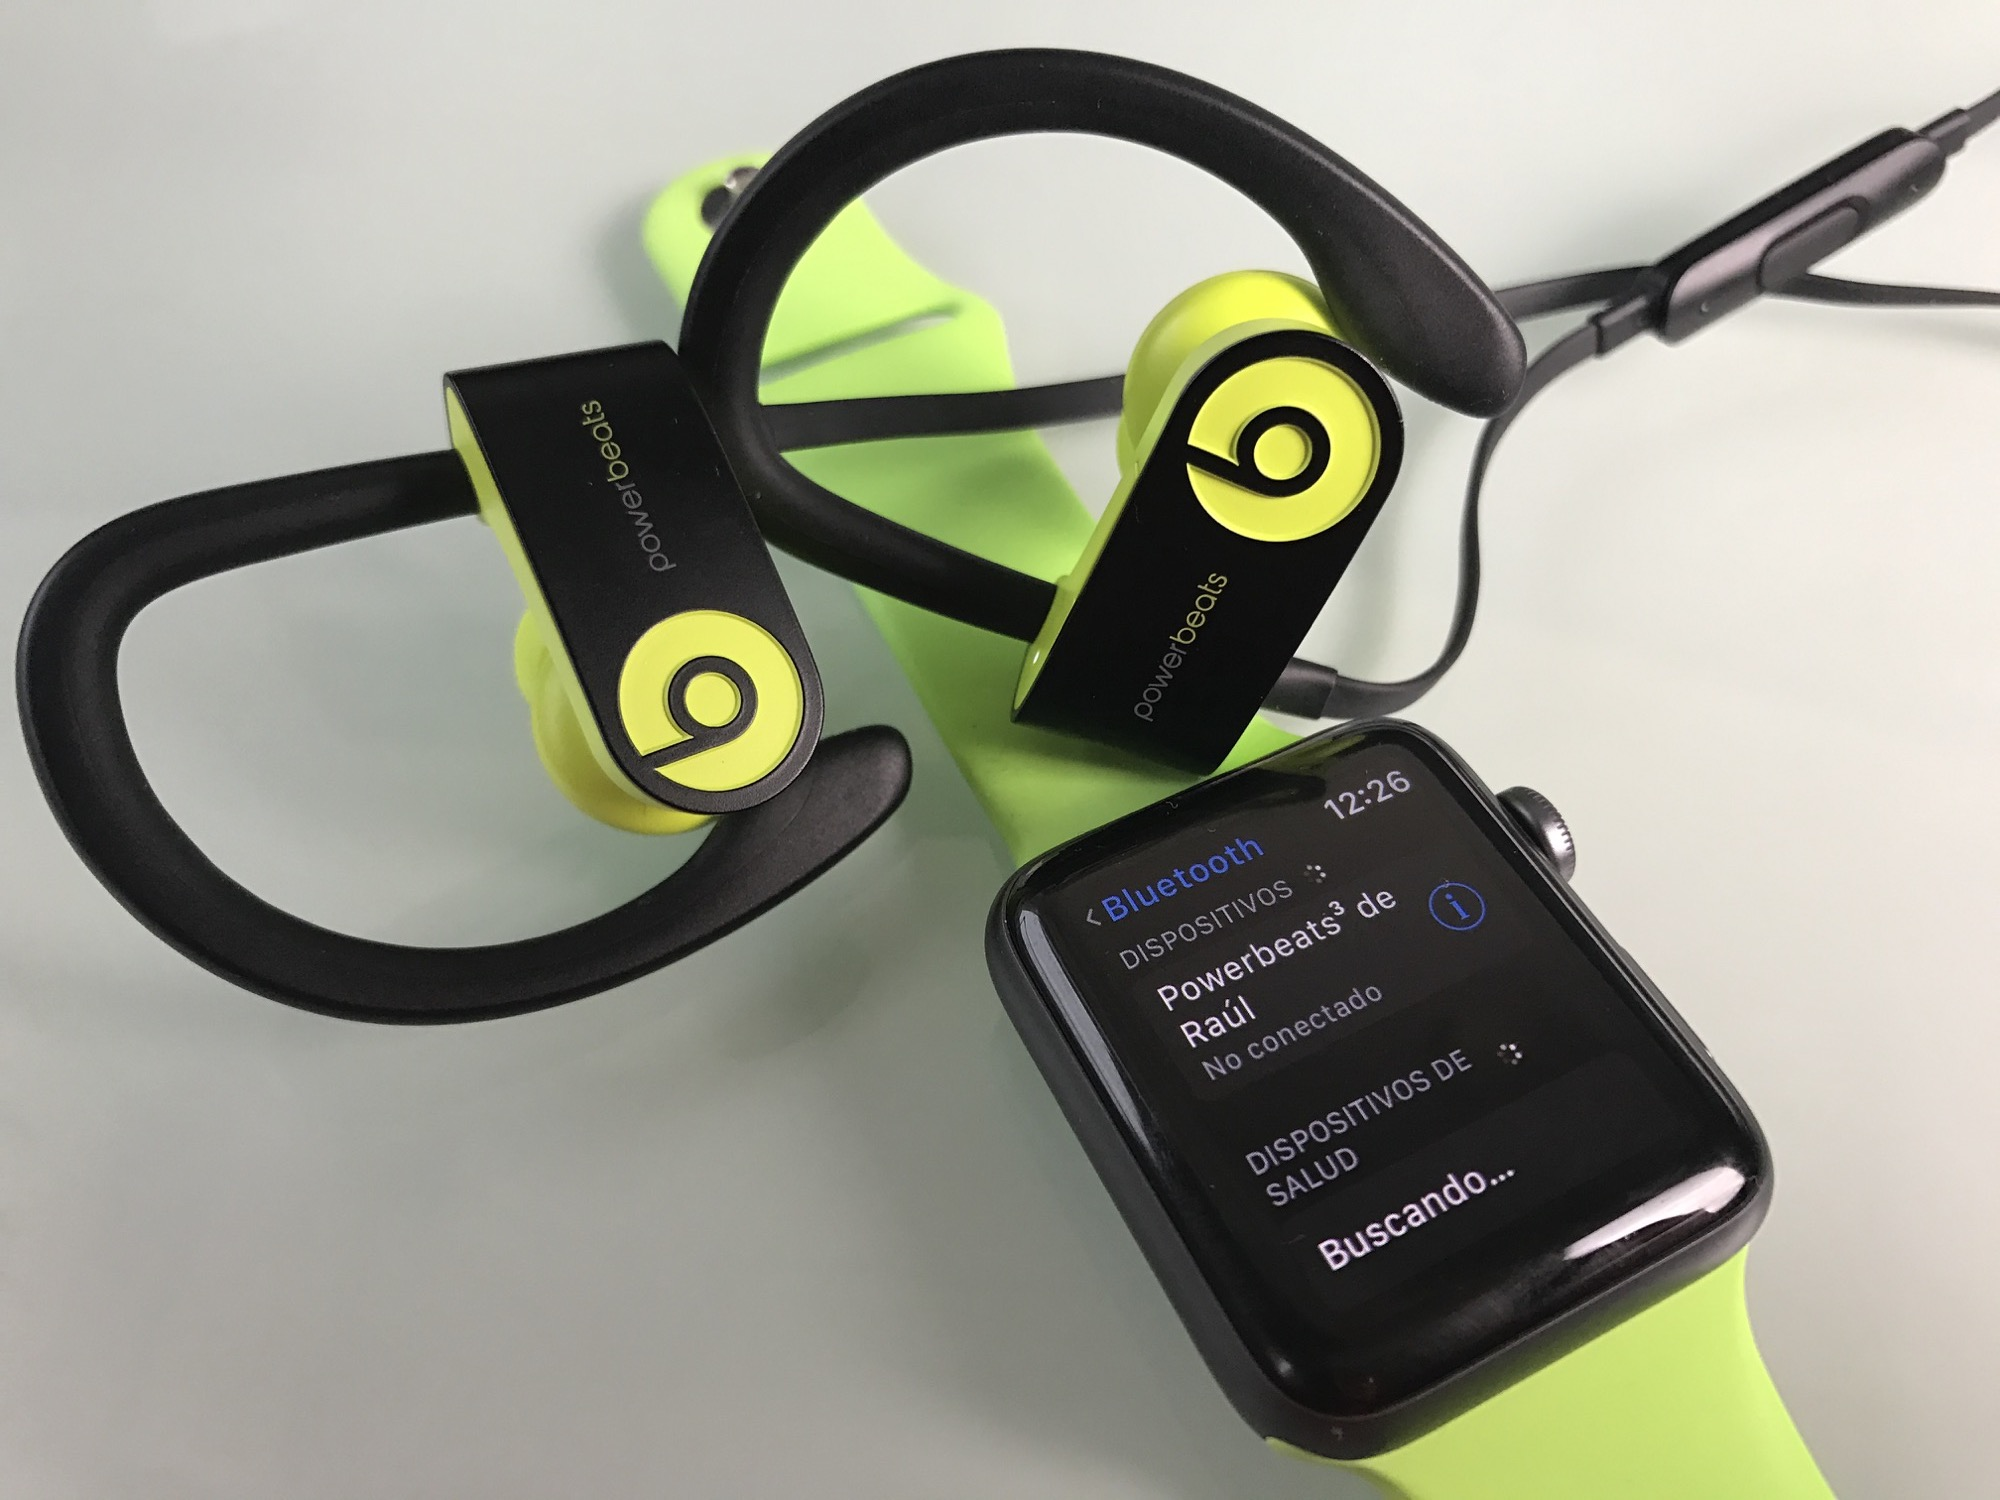 3d9ed814479 Beats Powerbeats 3 Wireless, modelo 2016. Análisis y opinión ...